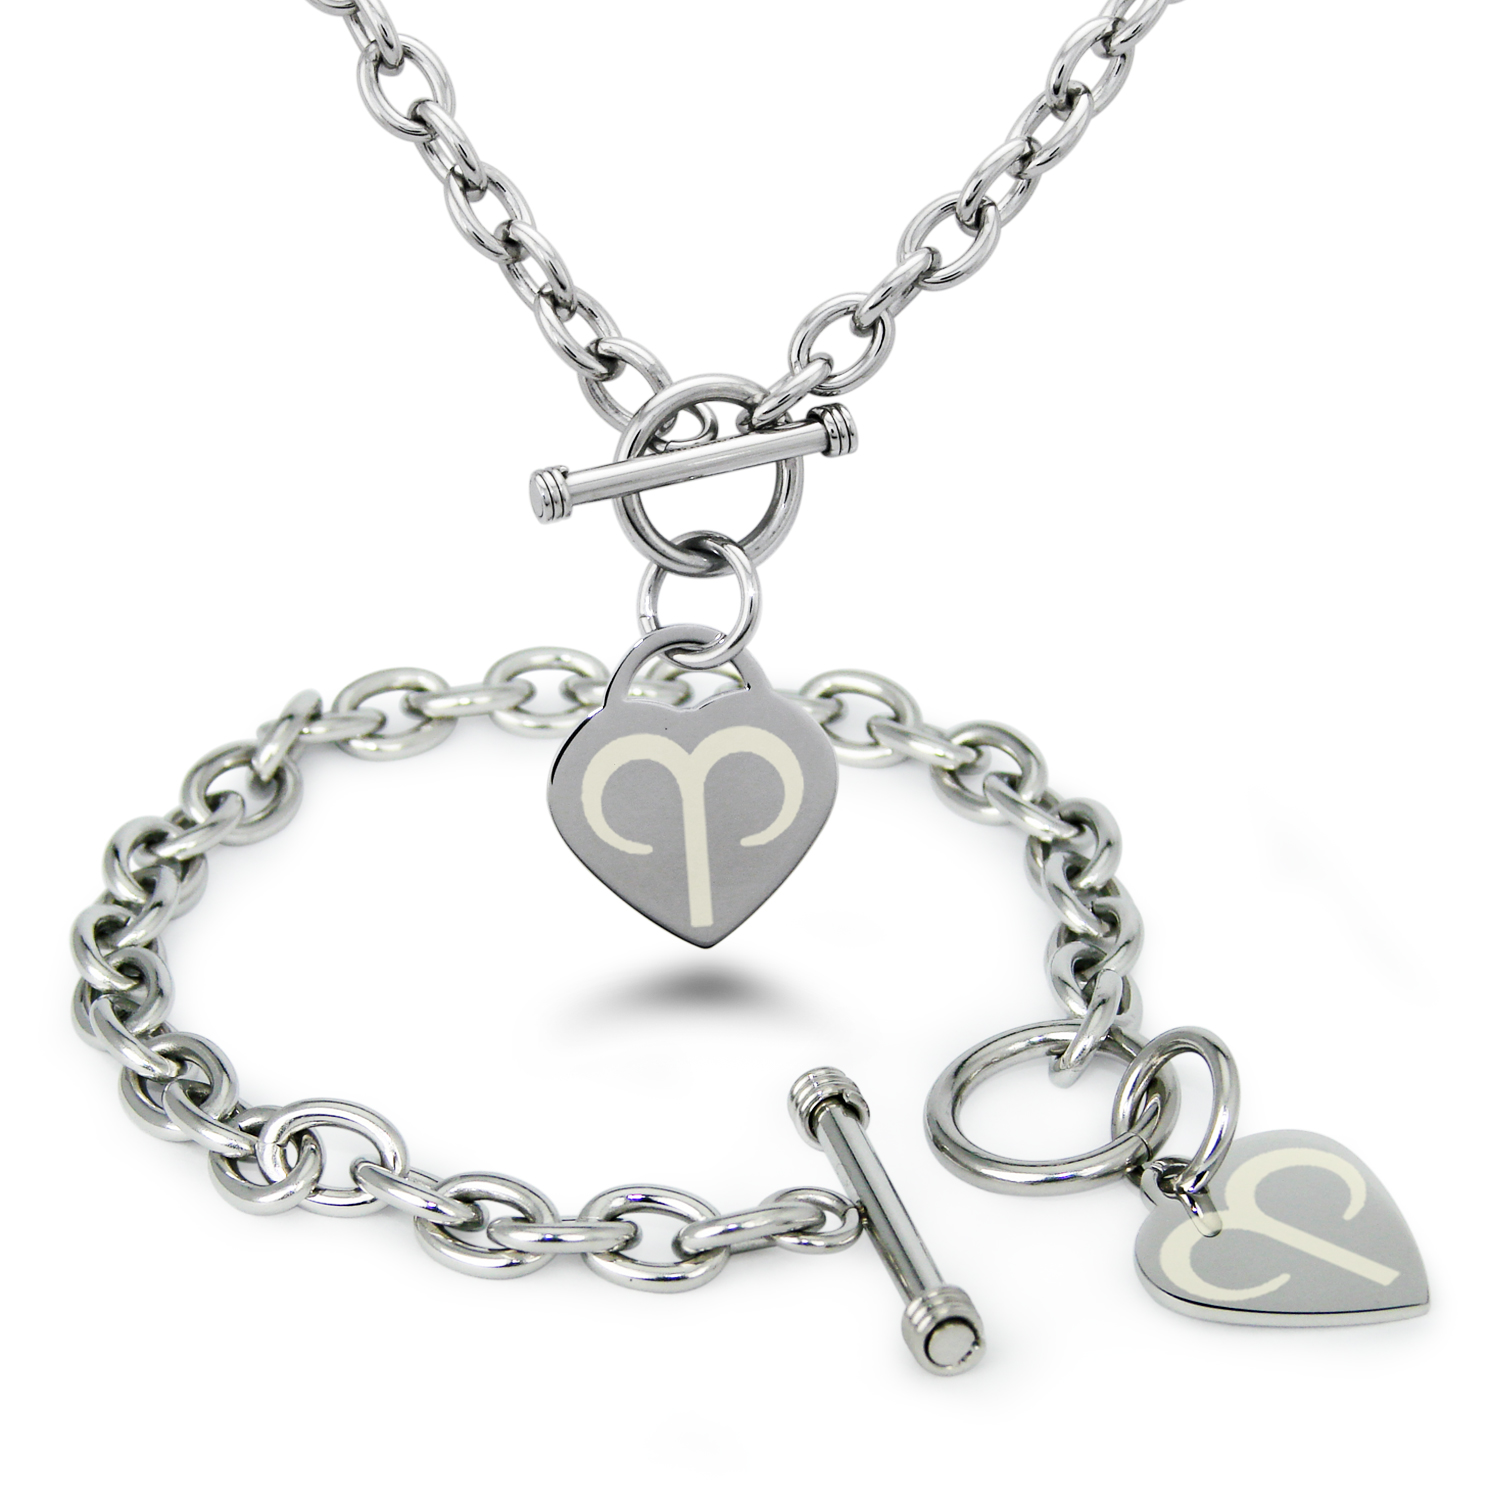 Stainless Steel Aries Astrology Symbol Heart Charm Toggle Bracelet & Necklace